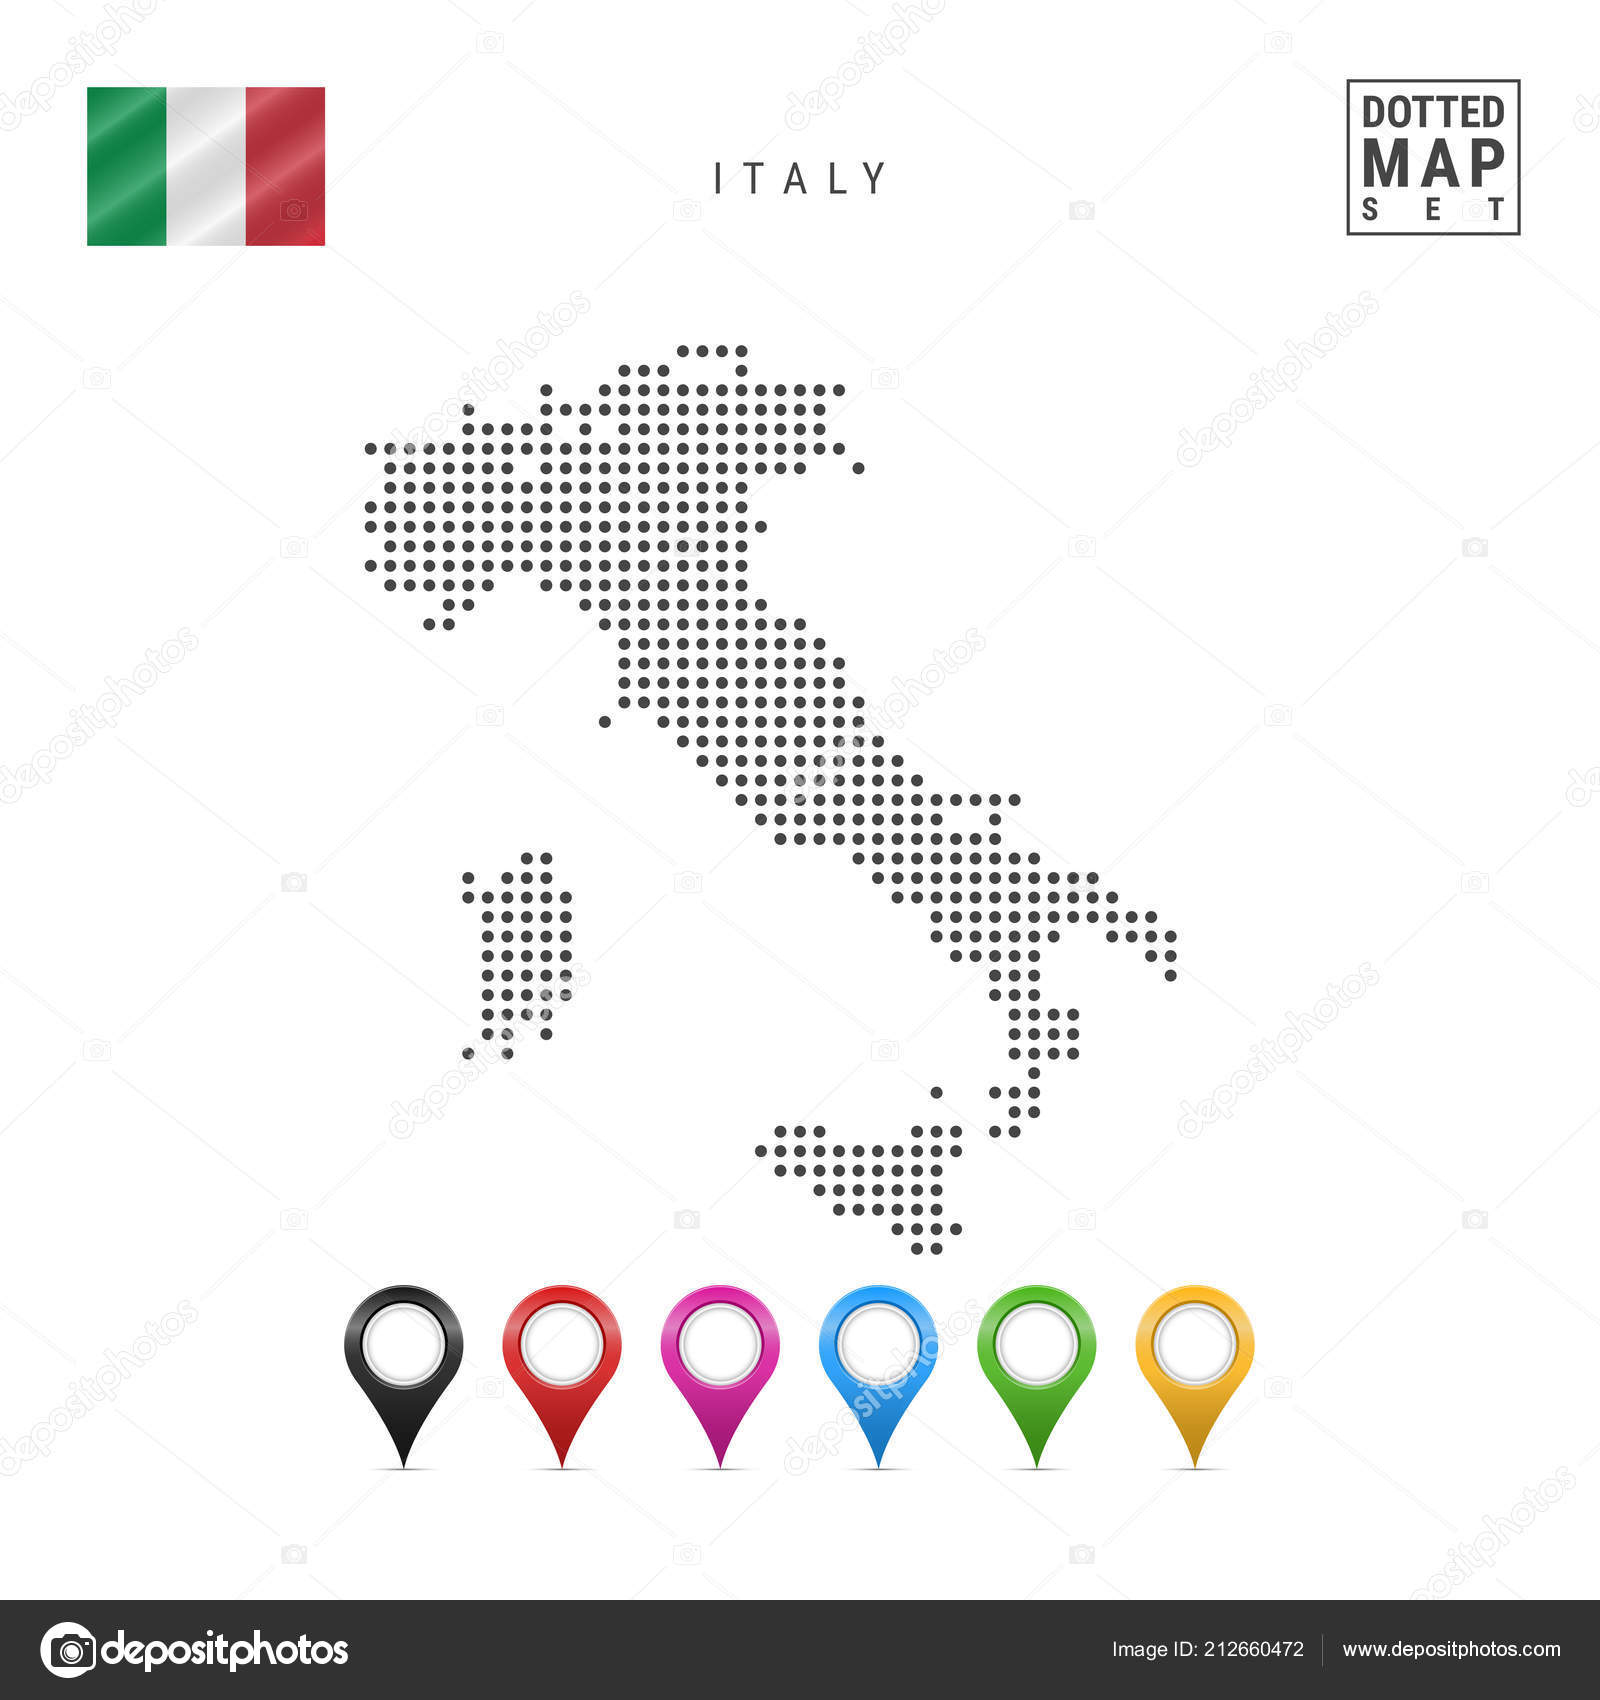 Simple Map Of Italy.Dotted Map Italy Simple Silhouette Italy National Flag Italy Set